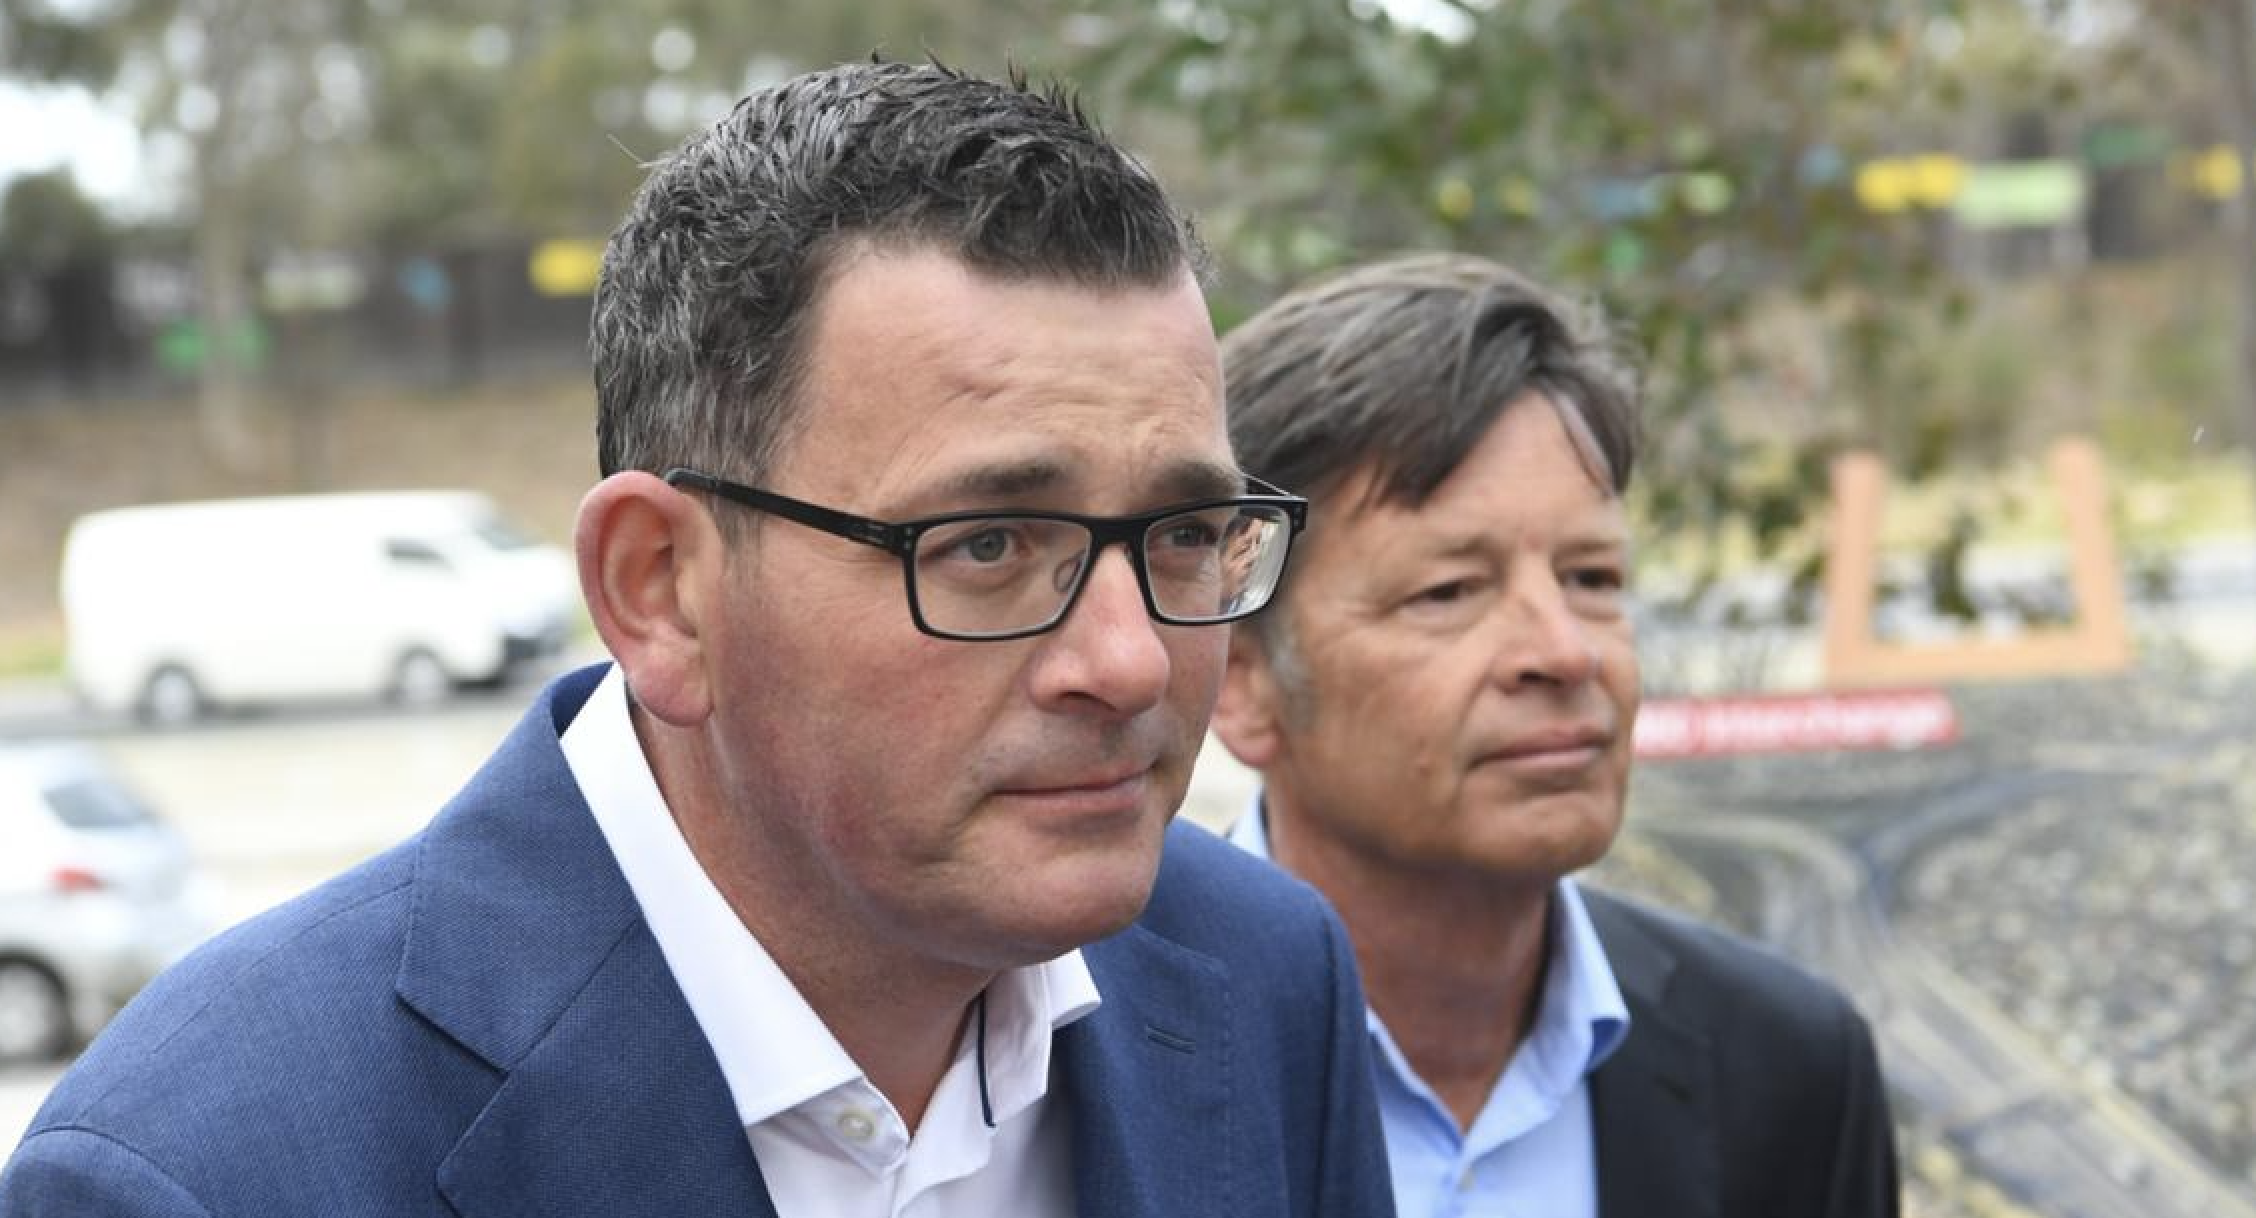 Victorian Labor minister Luke Donnellan resigns after IBAC allegations